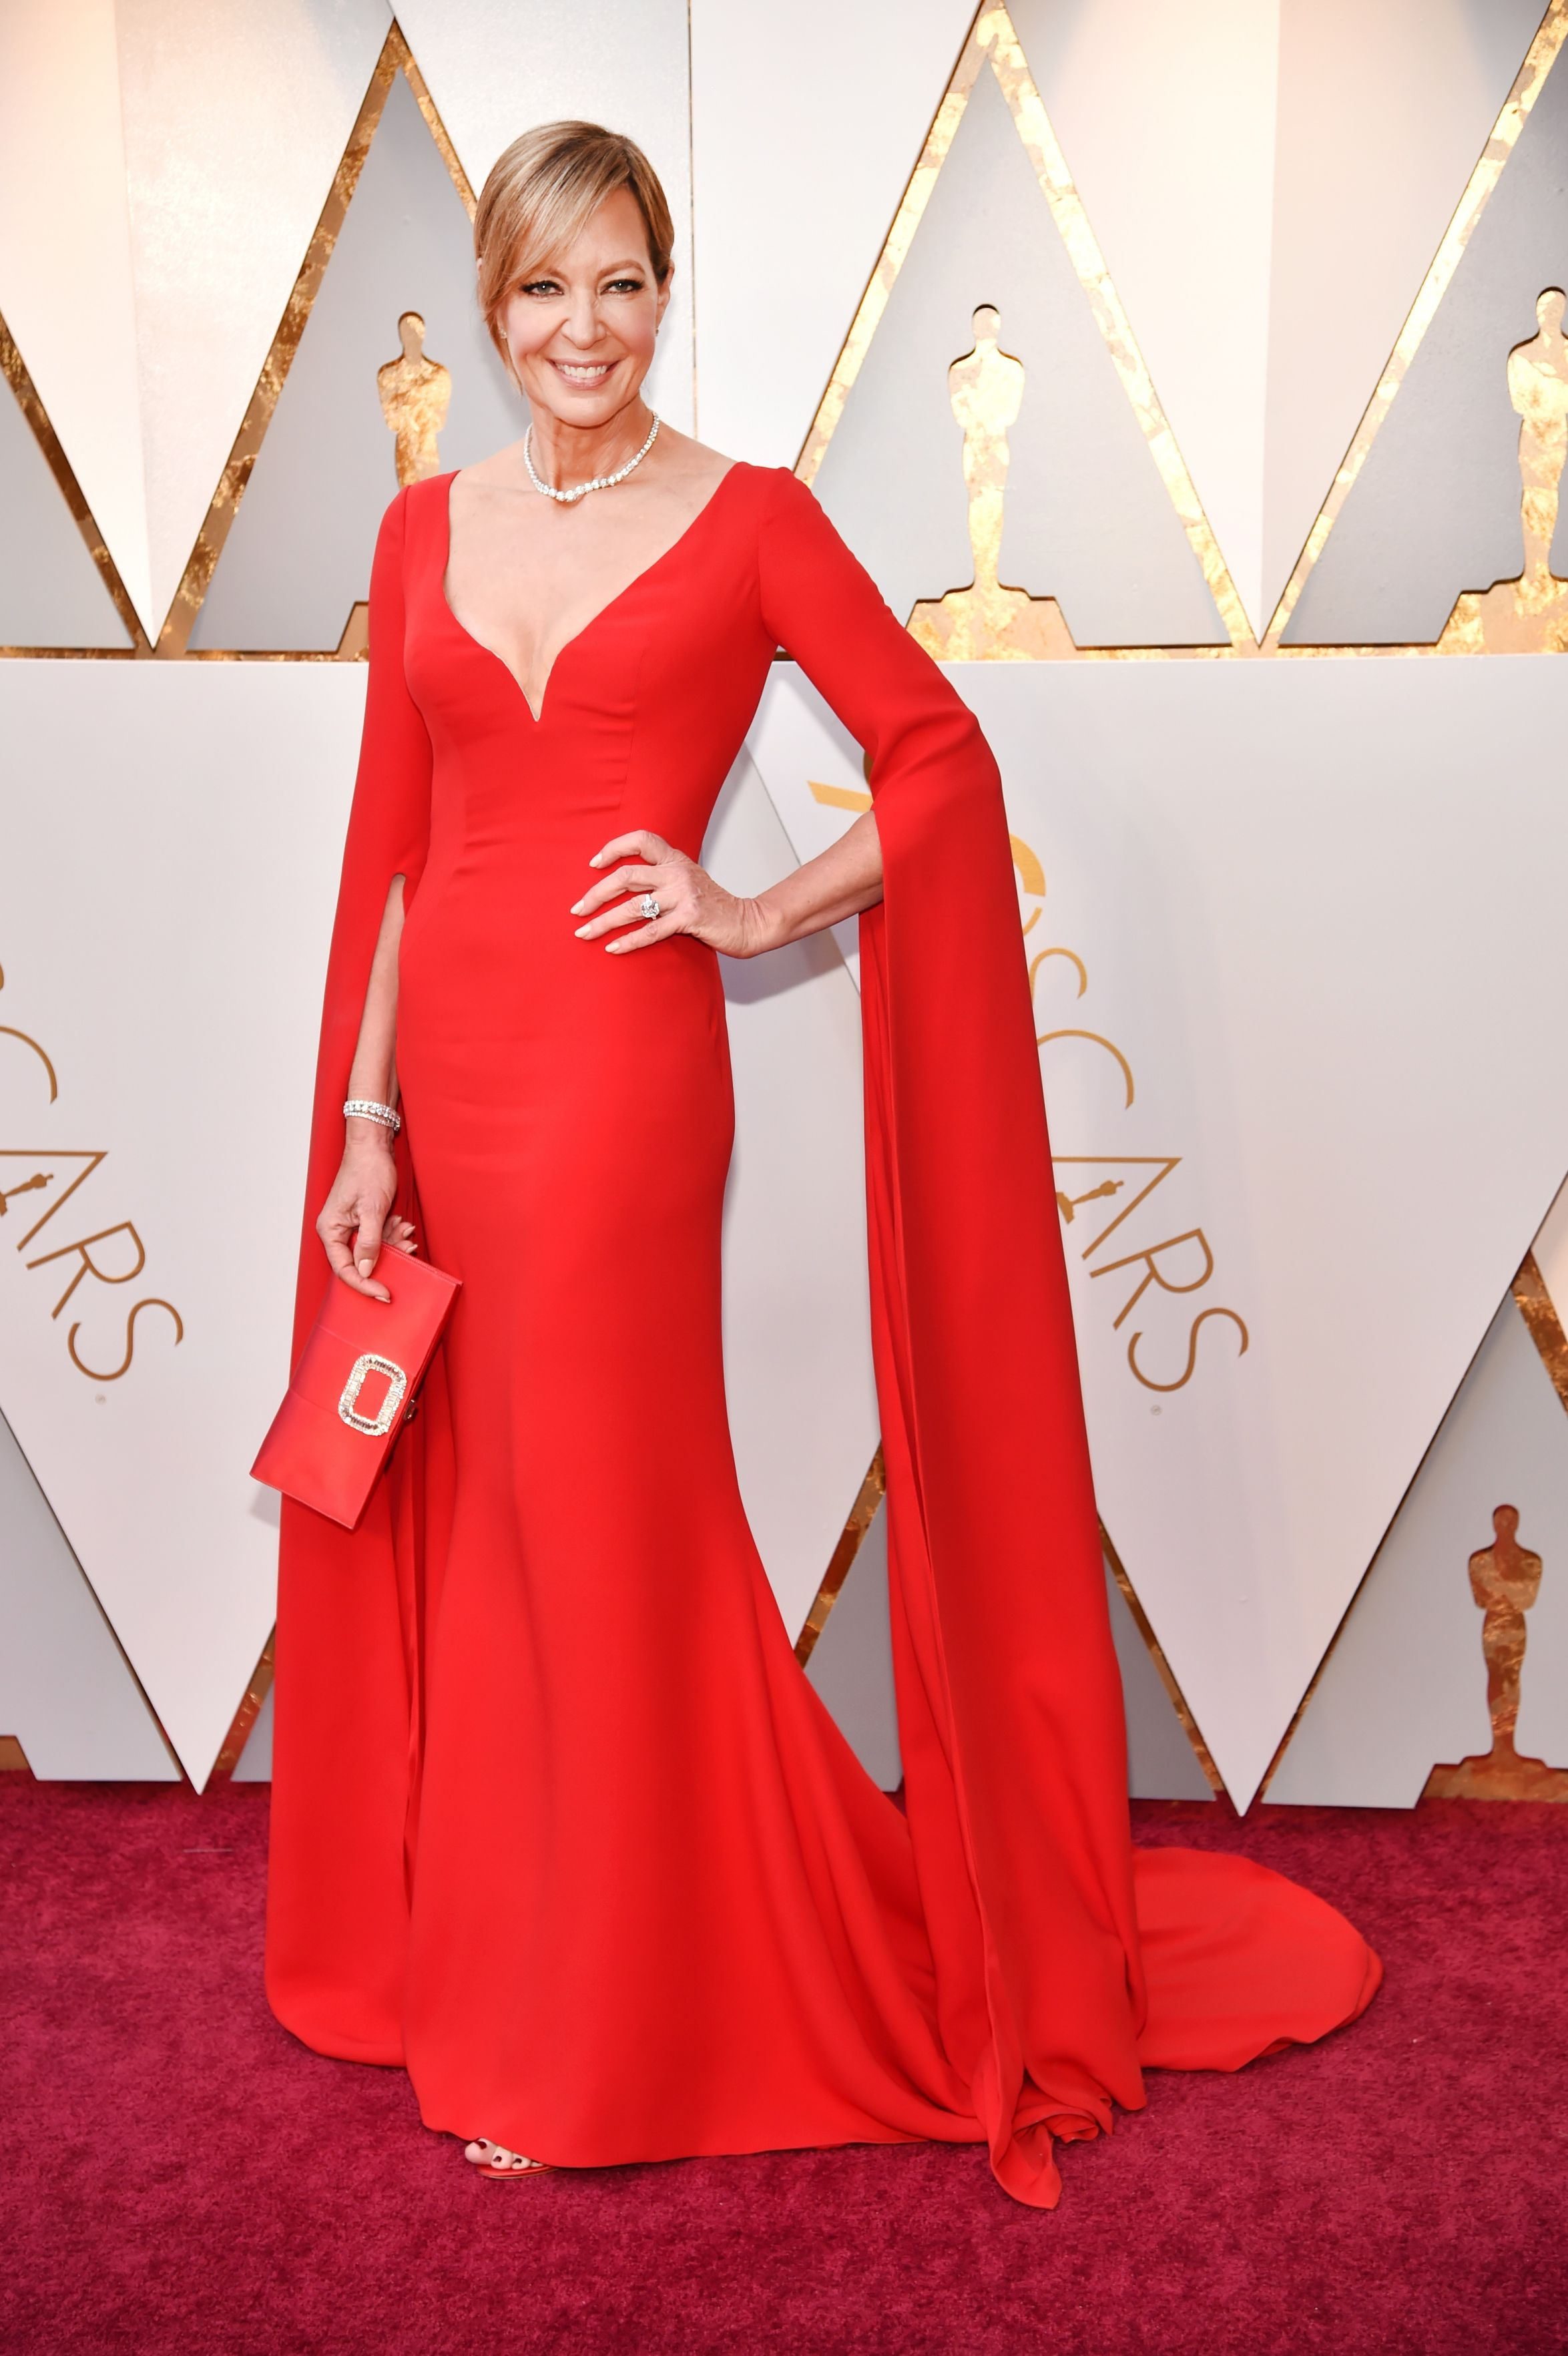 HOLLYWOOD, CA - MARCH 04: Allison Janney attends the 90th Annual Academy Awards at Hollywood & Highland Center on March 4, 2018 in Hollywood, California. (Photo by Kevin Mazur/WireImage)